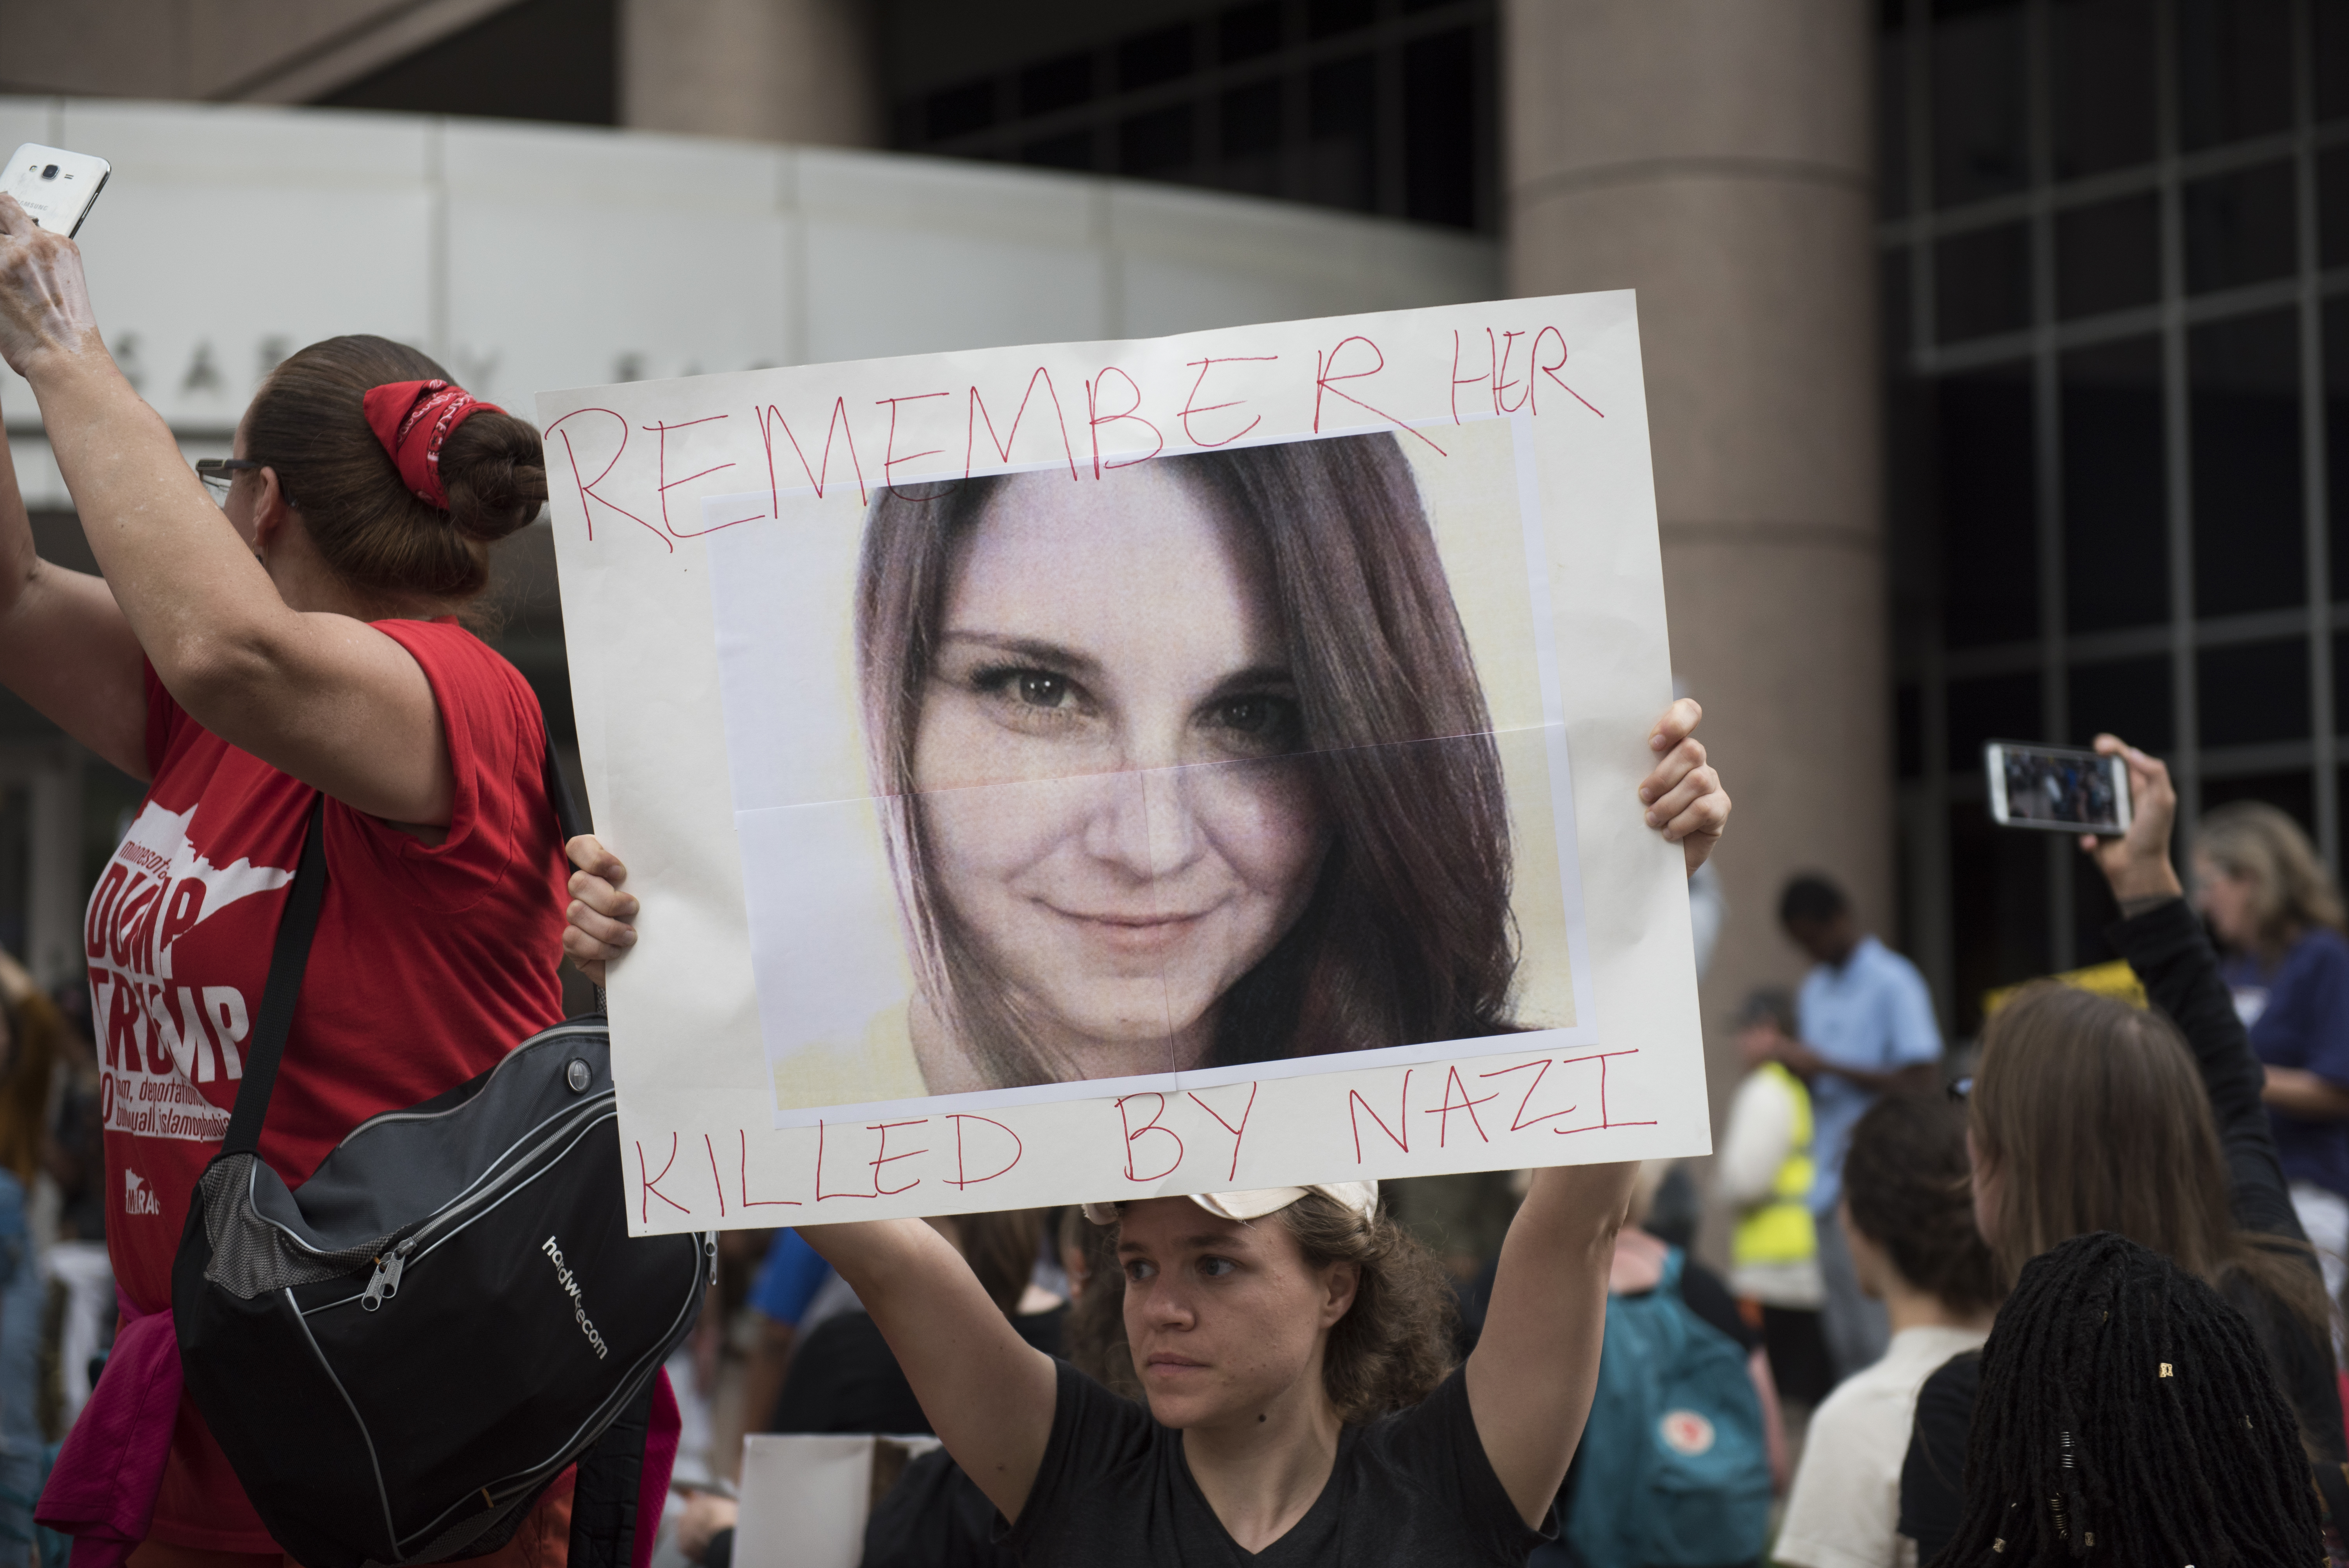 A protesters carries an image of Heather Heyer during a demonstration against racism and the violence over the weekend in Charlottesville, Virginia on August 14, 2017 in Minneapolis, Minnesota. Protesters estimated at more than 1,000 blocked streets and light rail during the action.